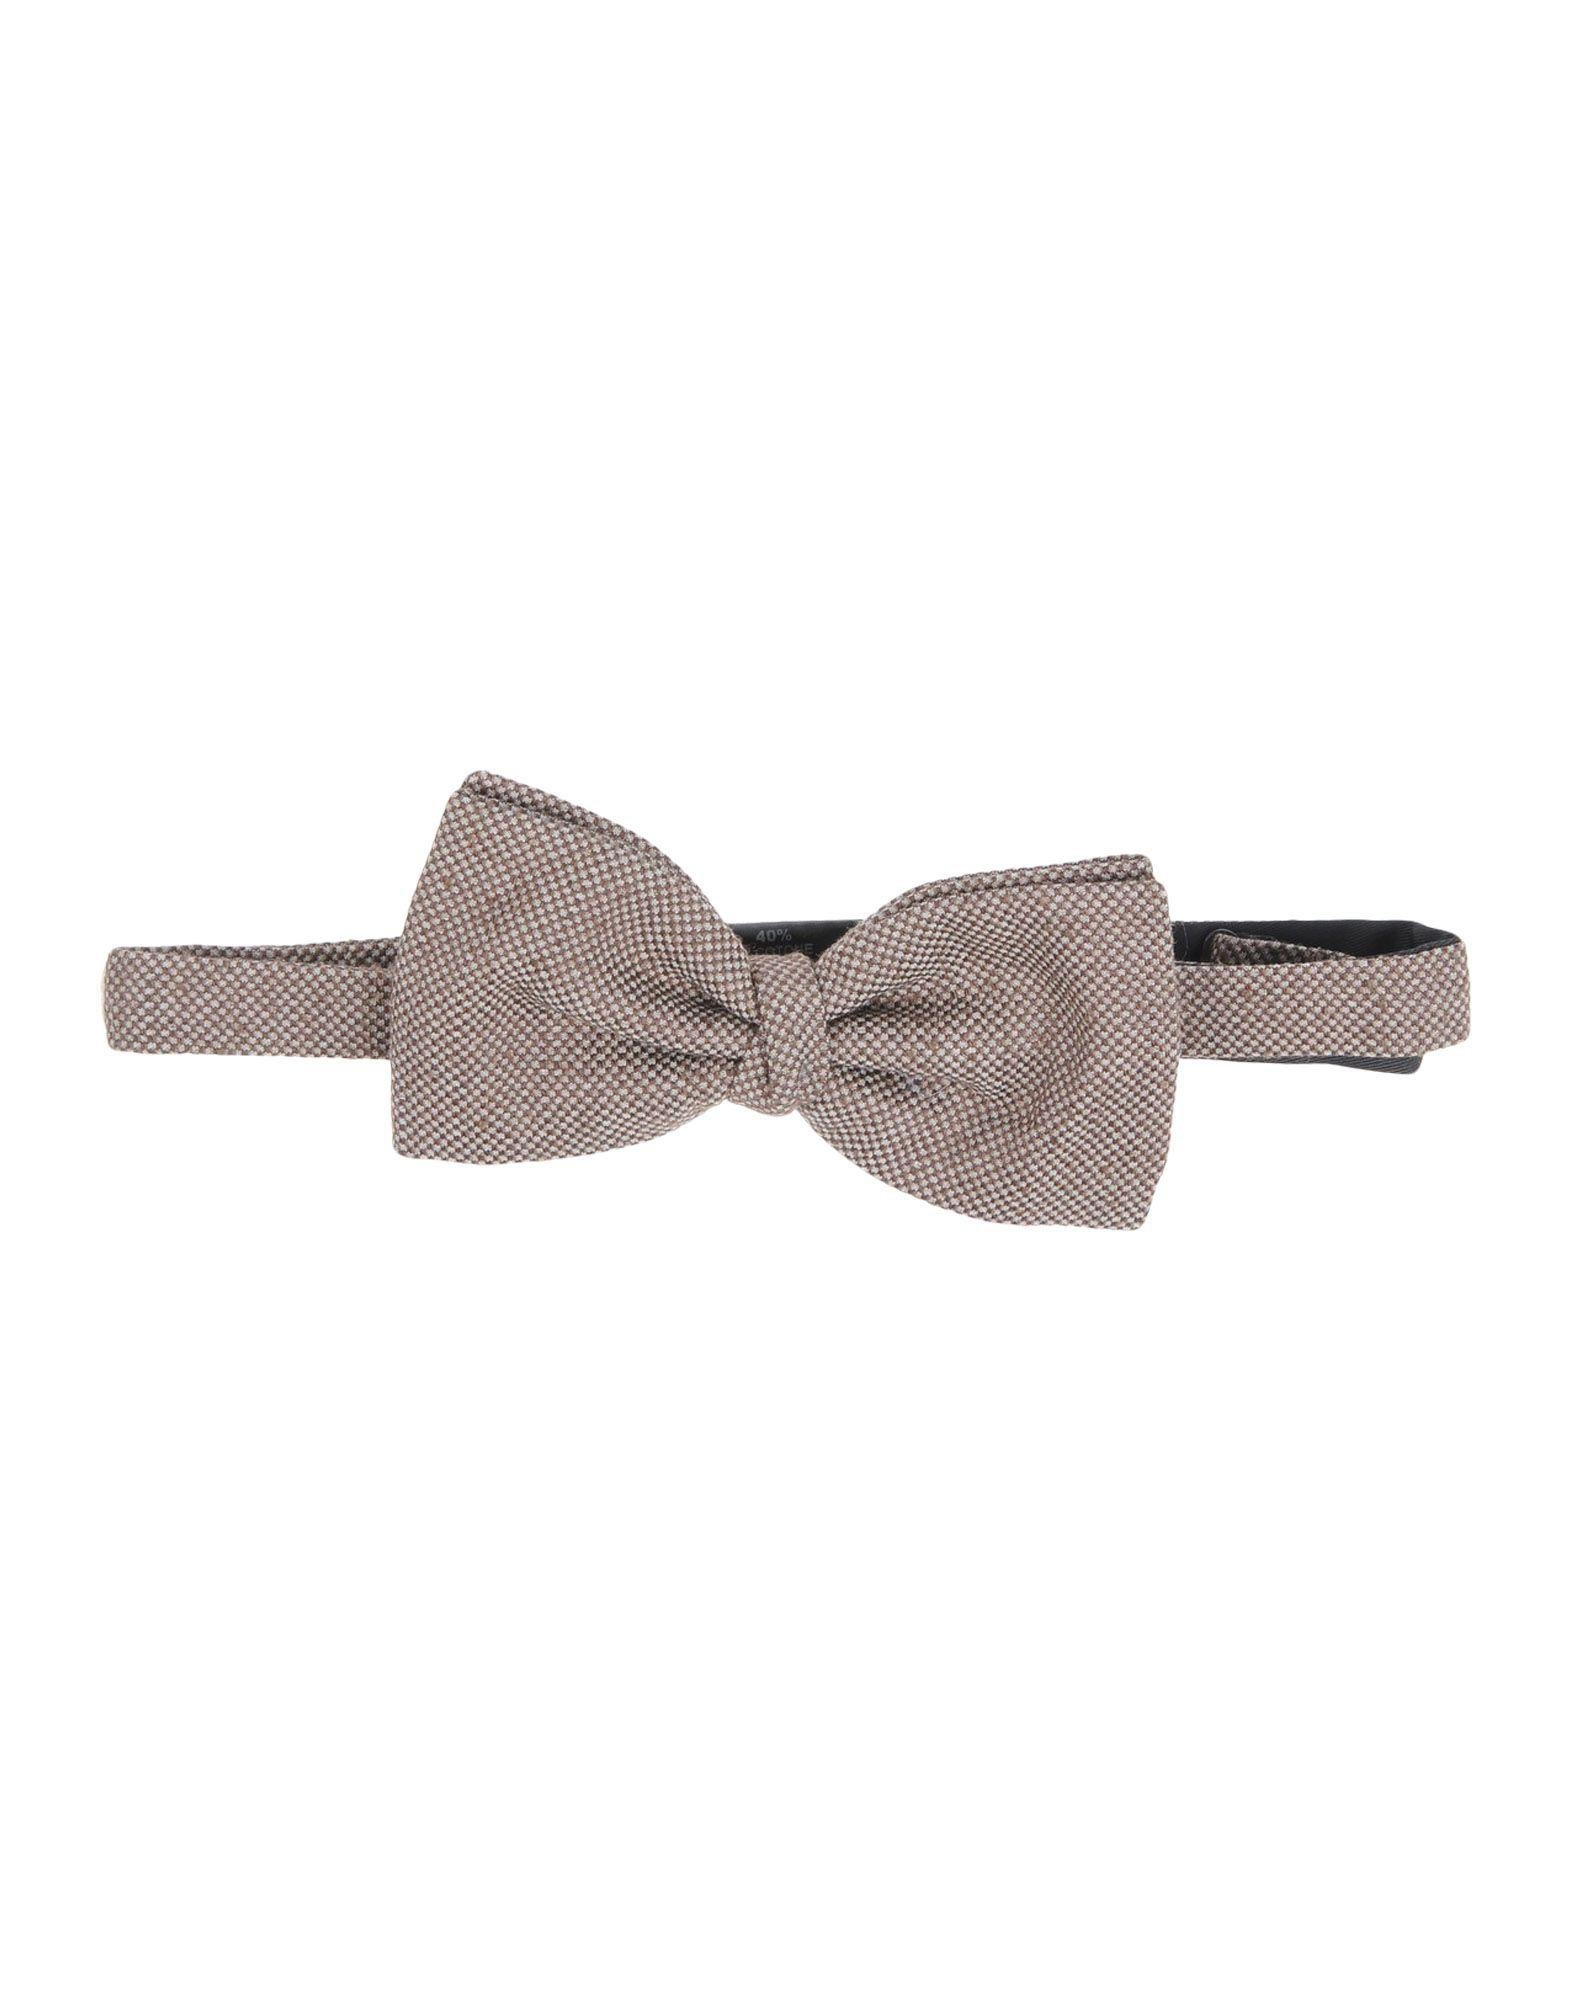 ACCESSORIES - Bow Ties Officina 36 733nH